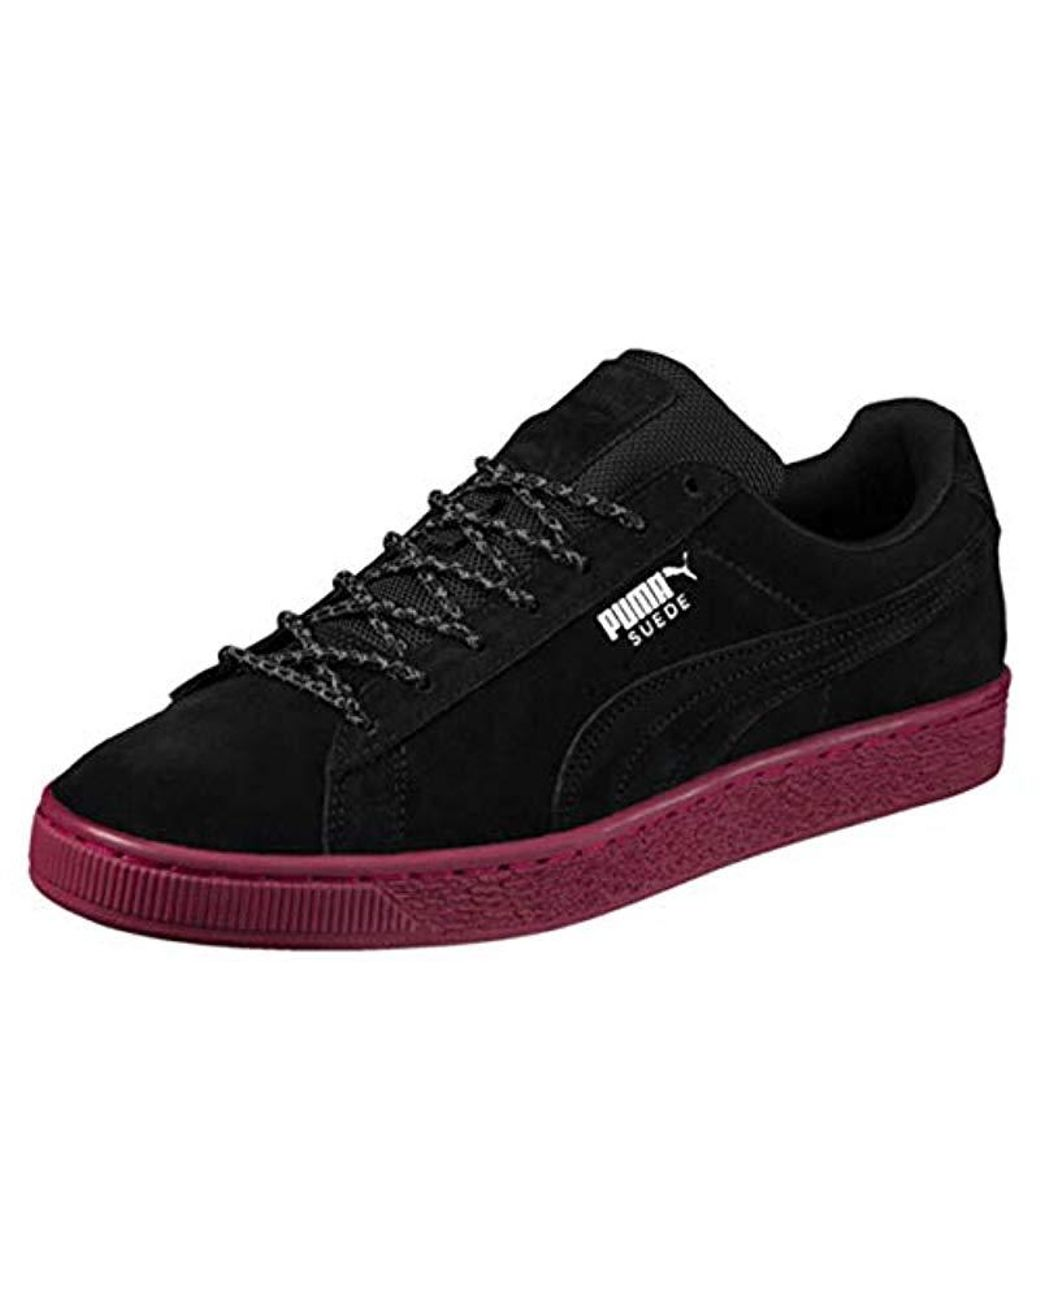 reputable site 02c0c 521c2 Long-Touch to Zoom. Long-Touch to Zoom. 1  2  3. PUMA - Black Unisex Adults   Suede Classic Weatherproof Trainers ...